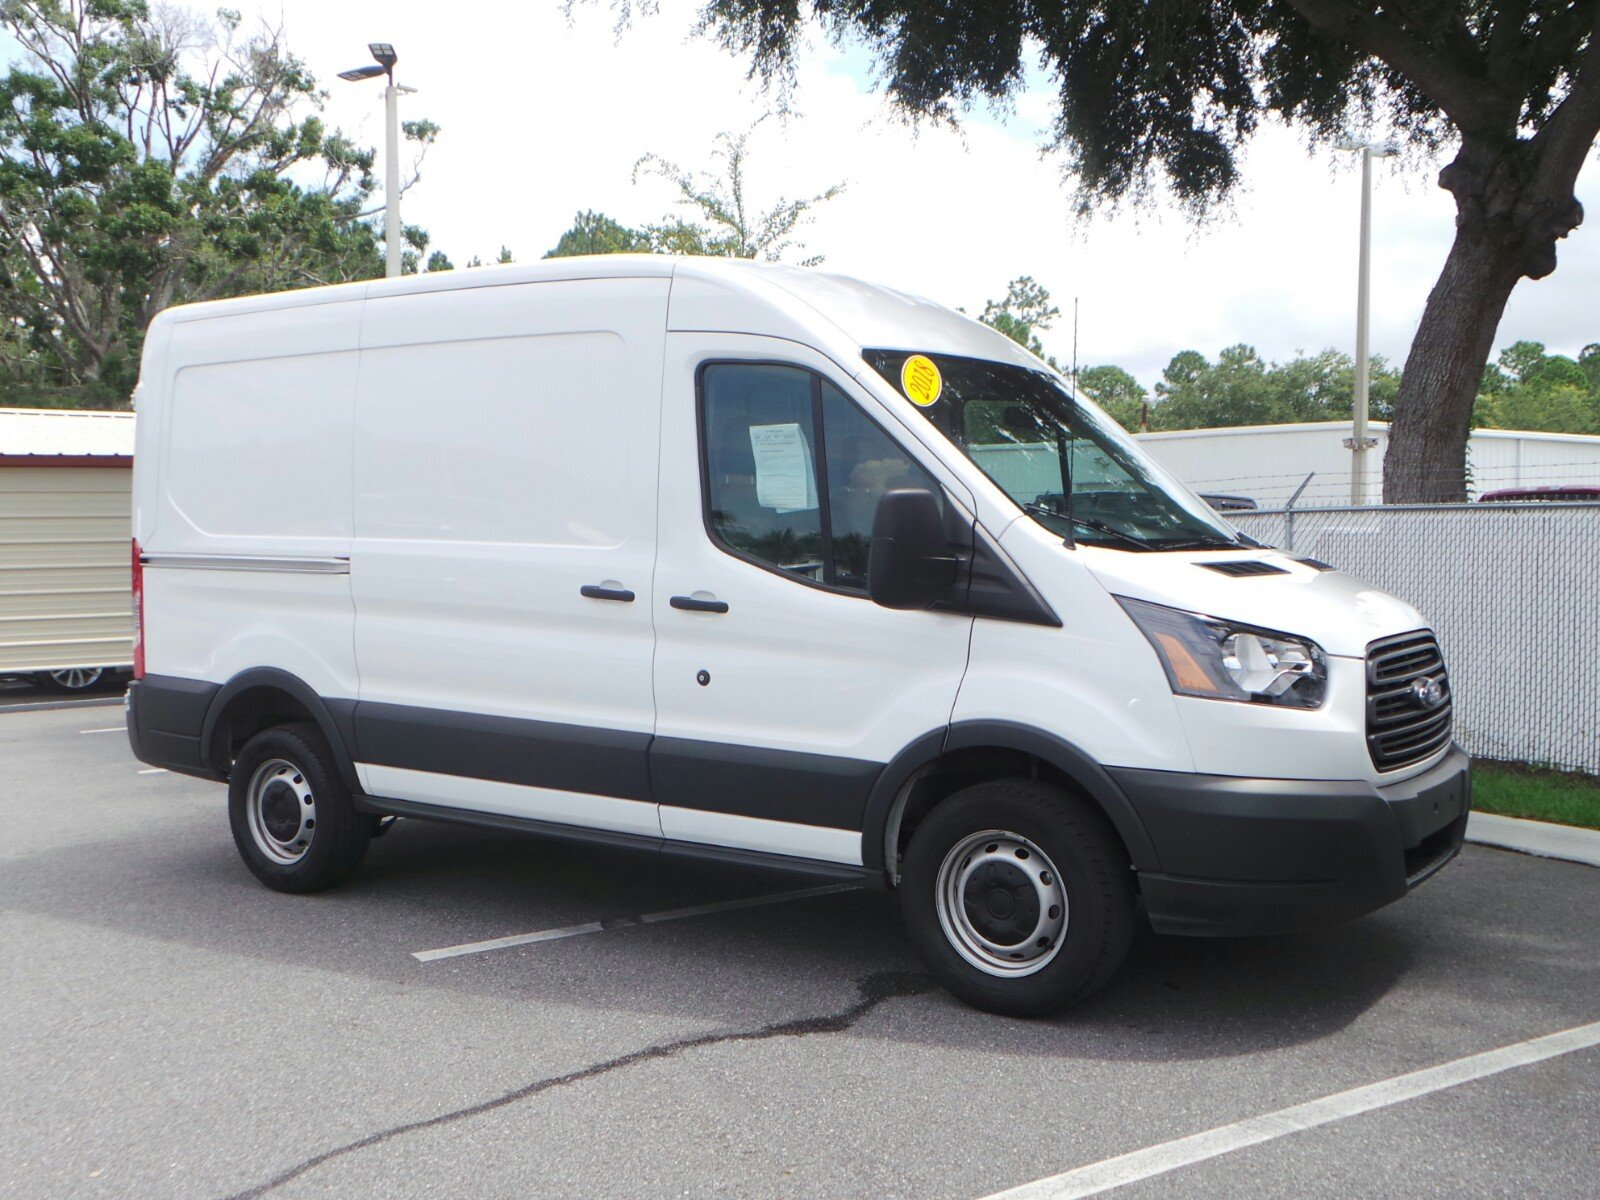 Pre Owned 2018 Ford Transit Van XLT Mini van Cargo in Jacksonville